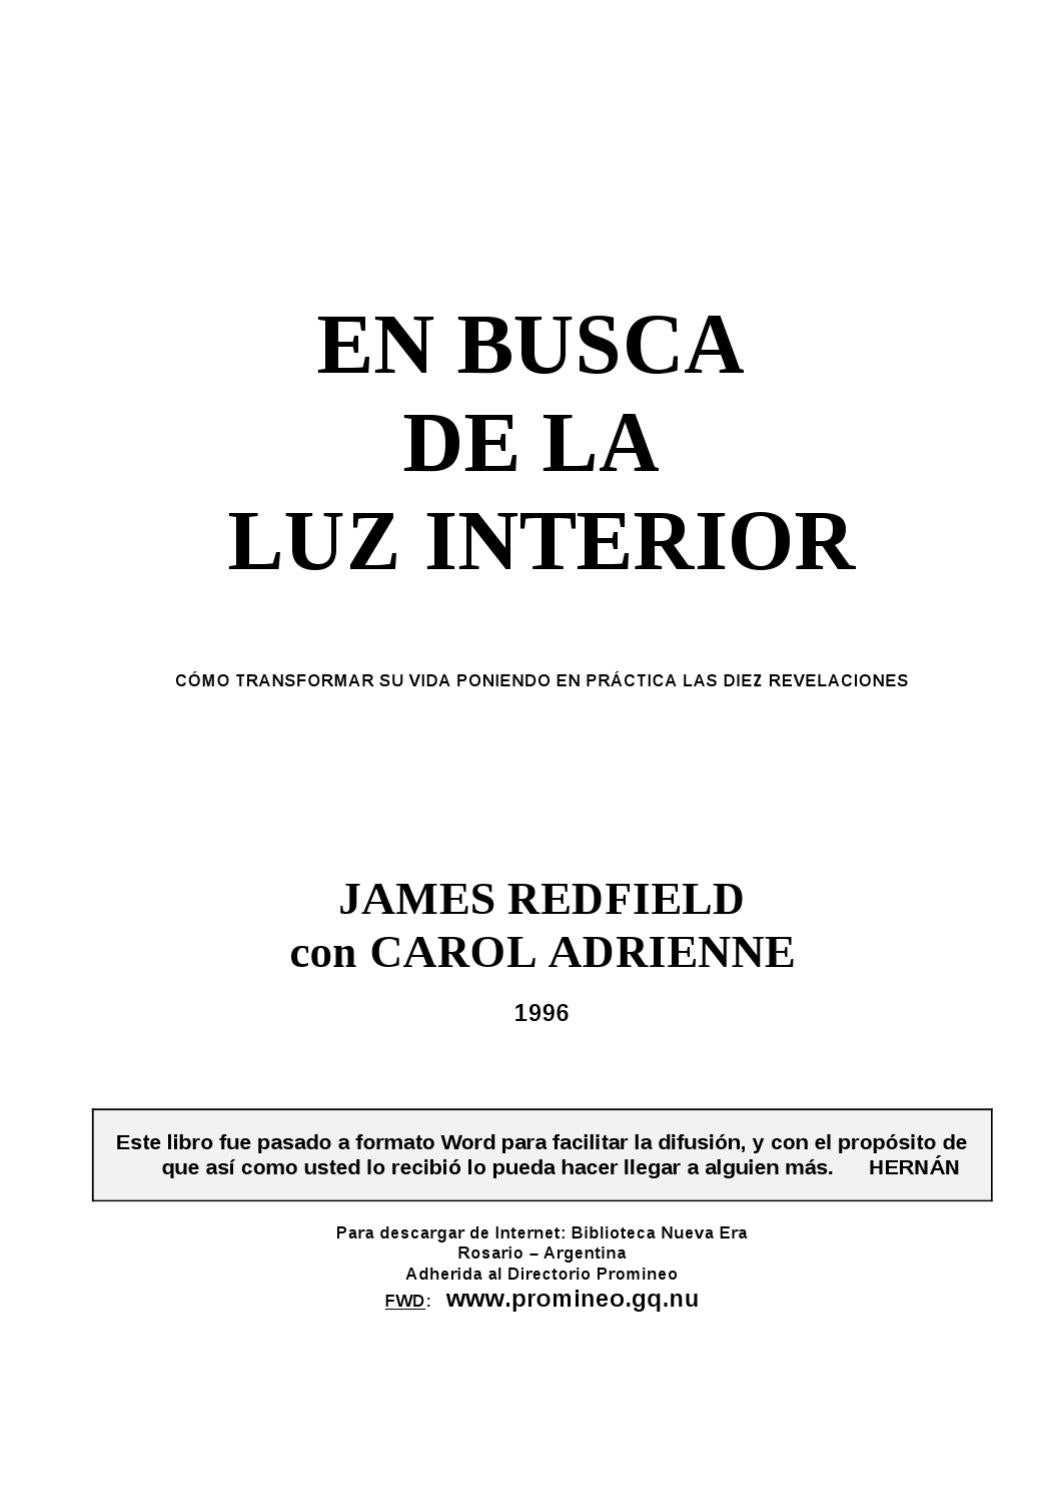 Redfield James - En Busca de la Luz Interior by Catalin Trandafir ...